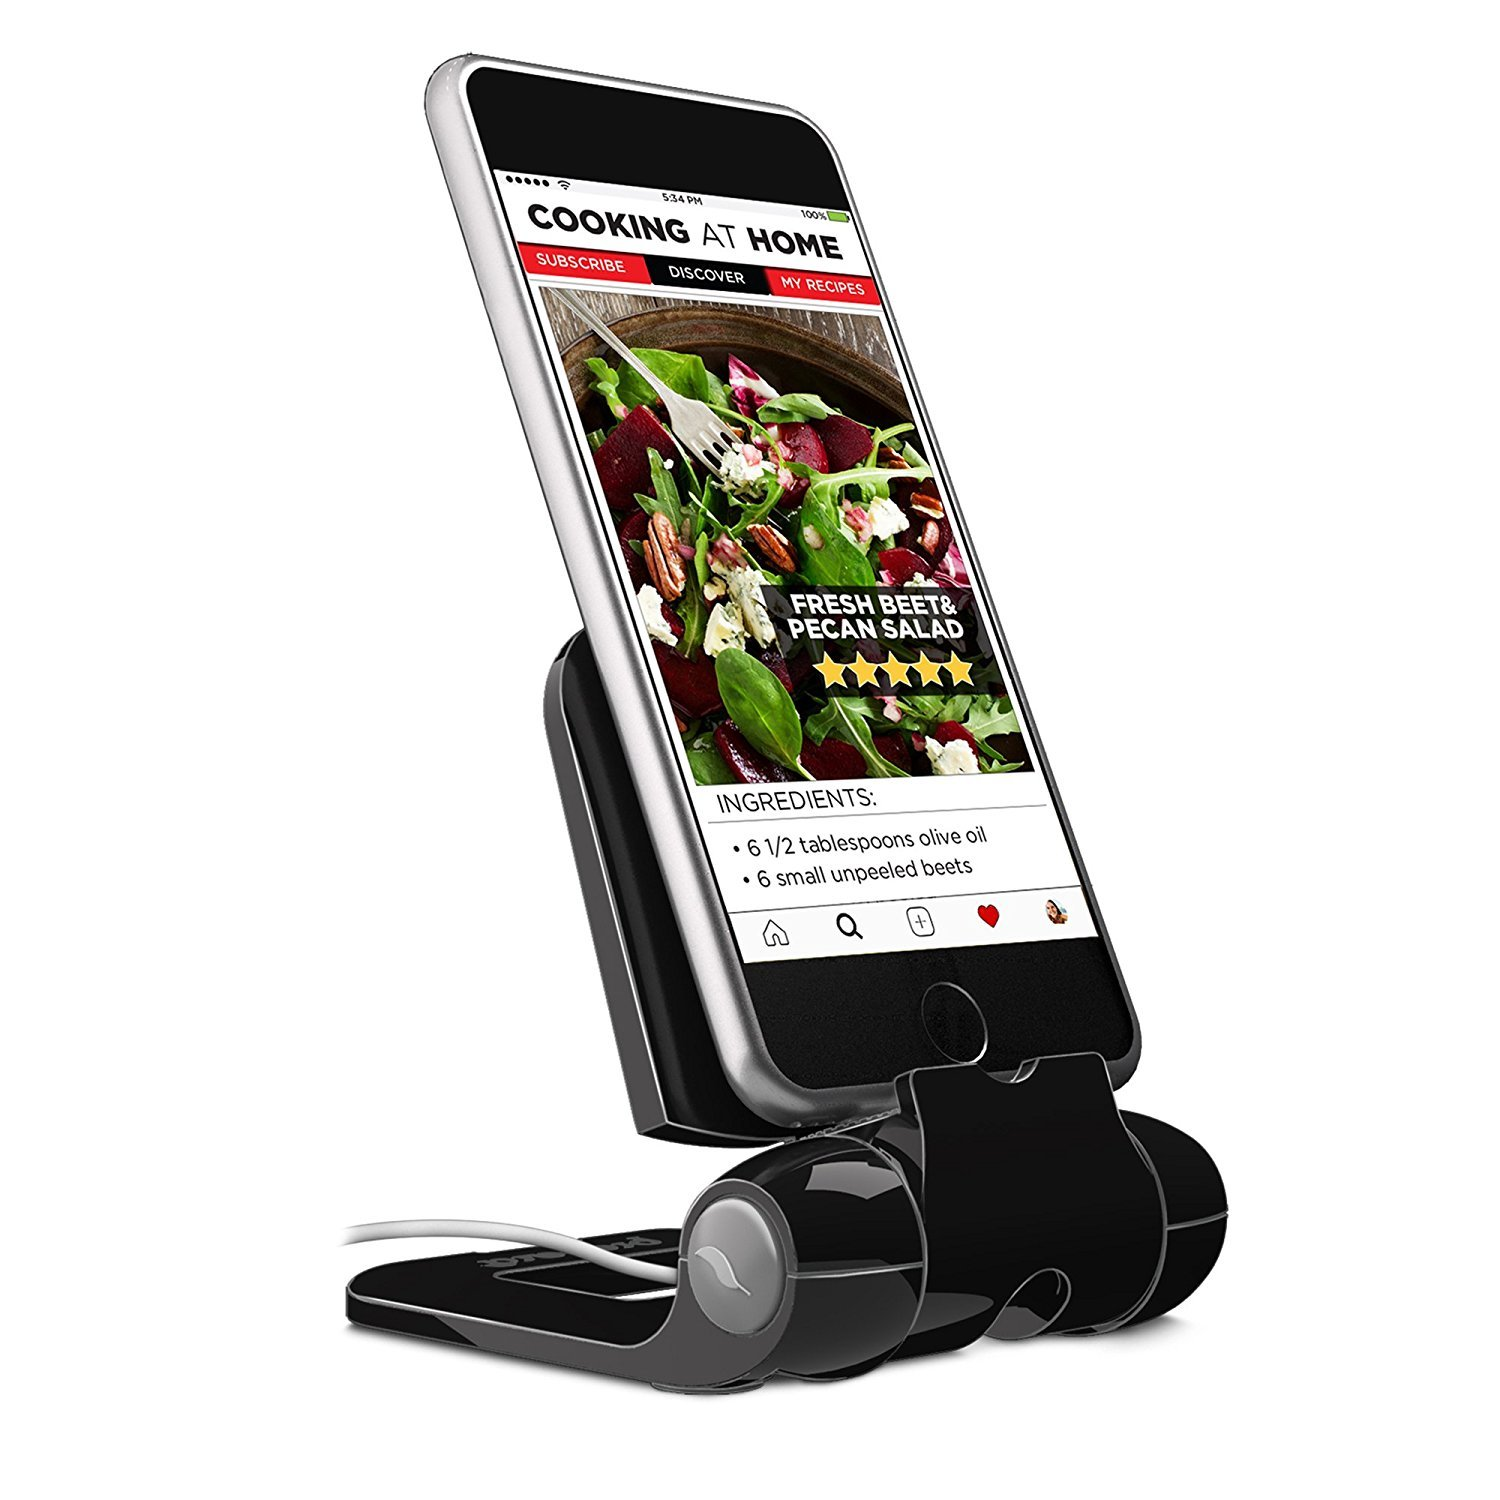 Foldable Cell Phone Stand, Prepara iPhone Stand : Adjustable Stand, Holder, Cradle for all Android Smartphone, iPhone X 8 7 6s 6 Plus 5 5c, Charging Capable, Desk Accessories – Black